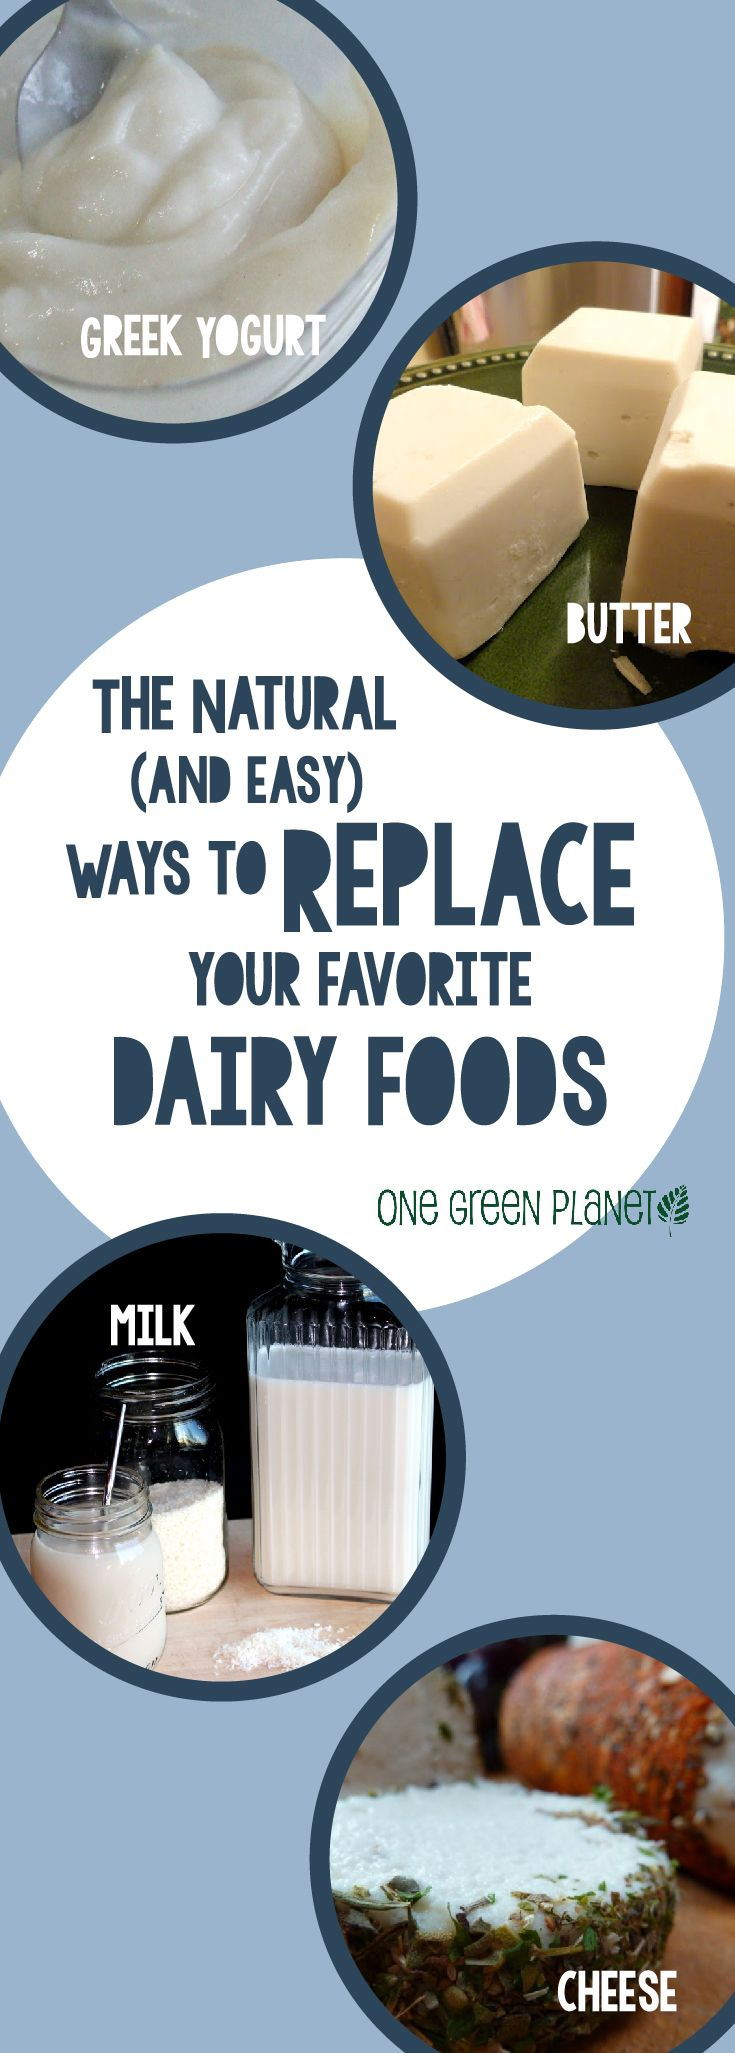 This is my biggest issue, especially since I am lactose intolerant